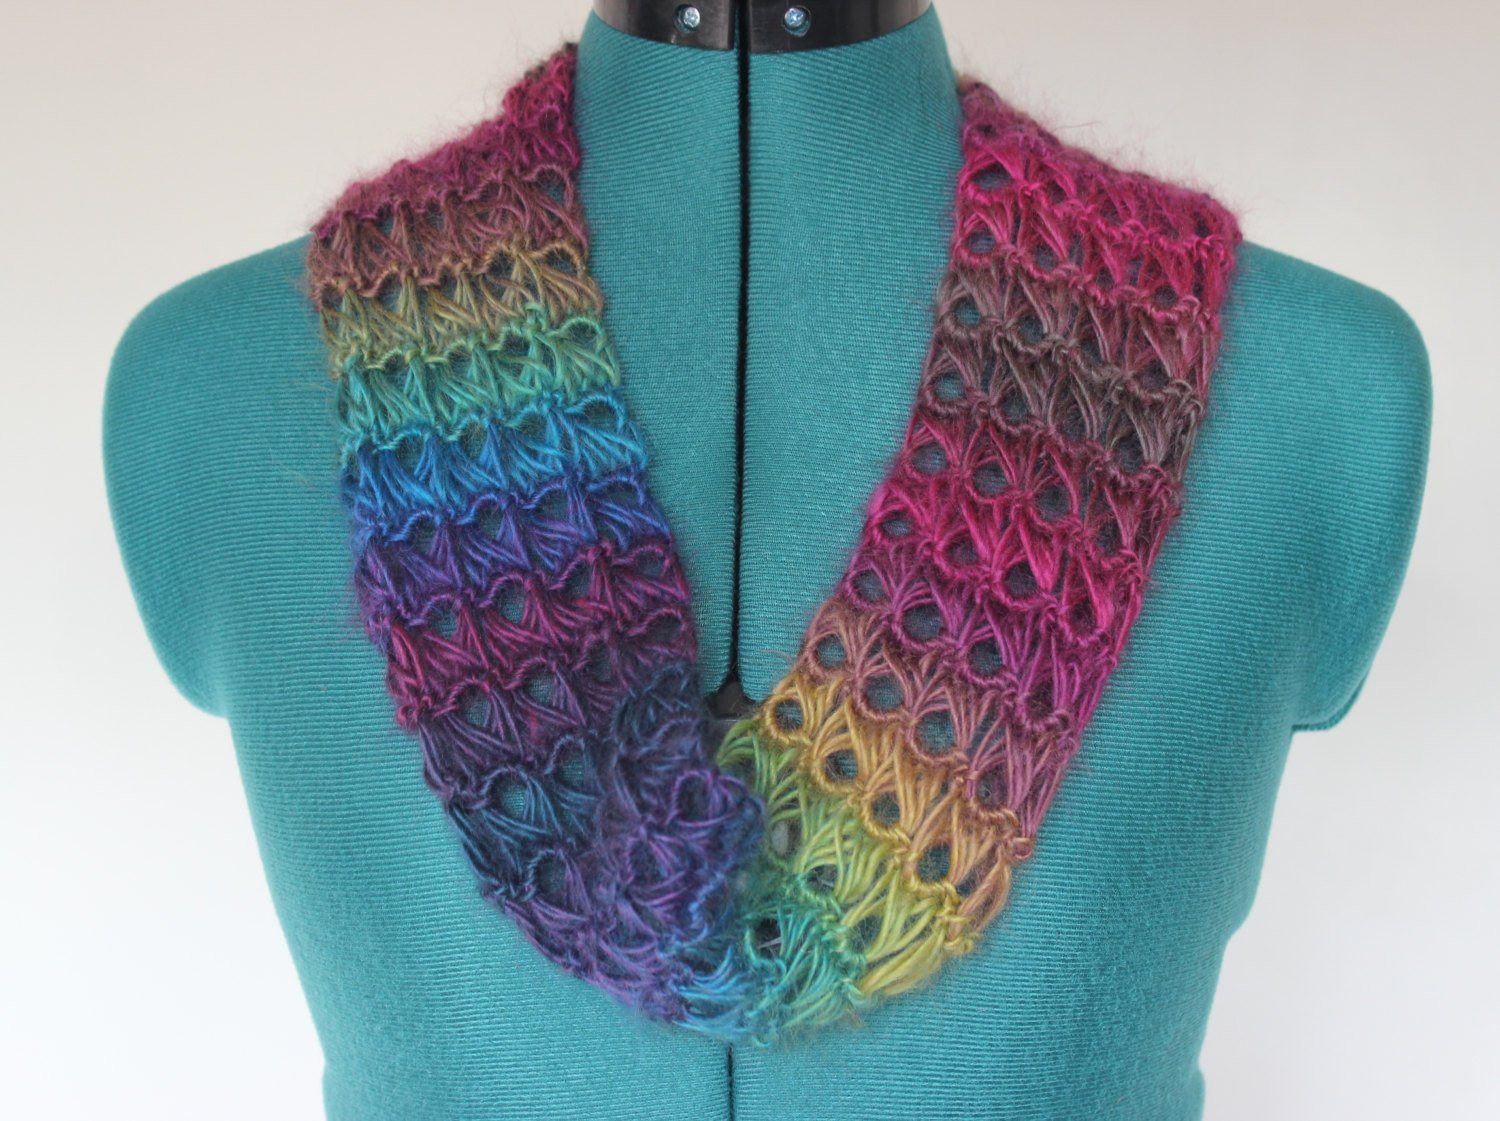 Beautiful Crochet Broomstick Lace Infinity Scarf Lace Infinity Scarf Of Charming 45 Ideas Lace Infinity Scarf